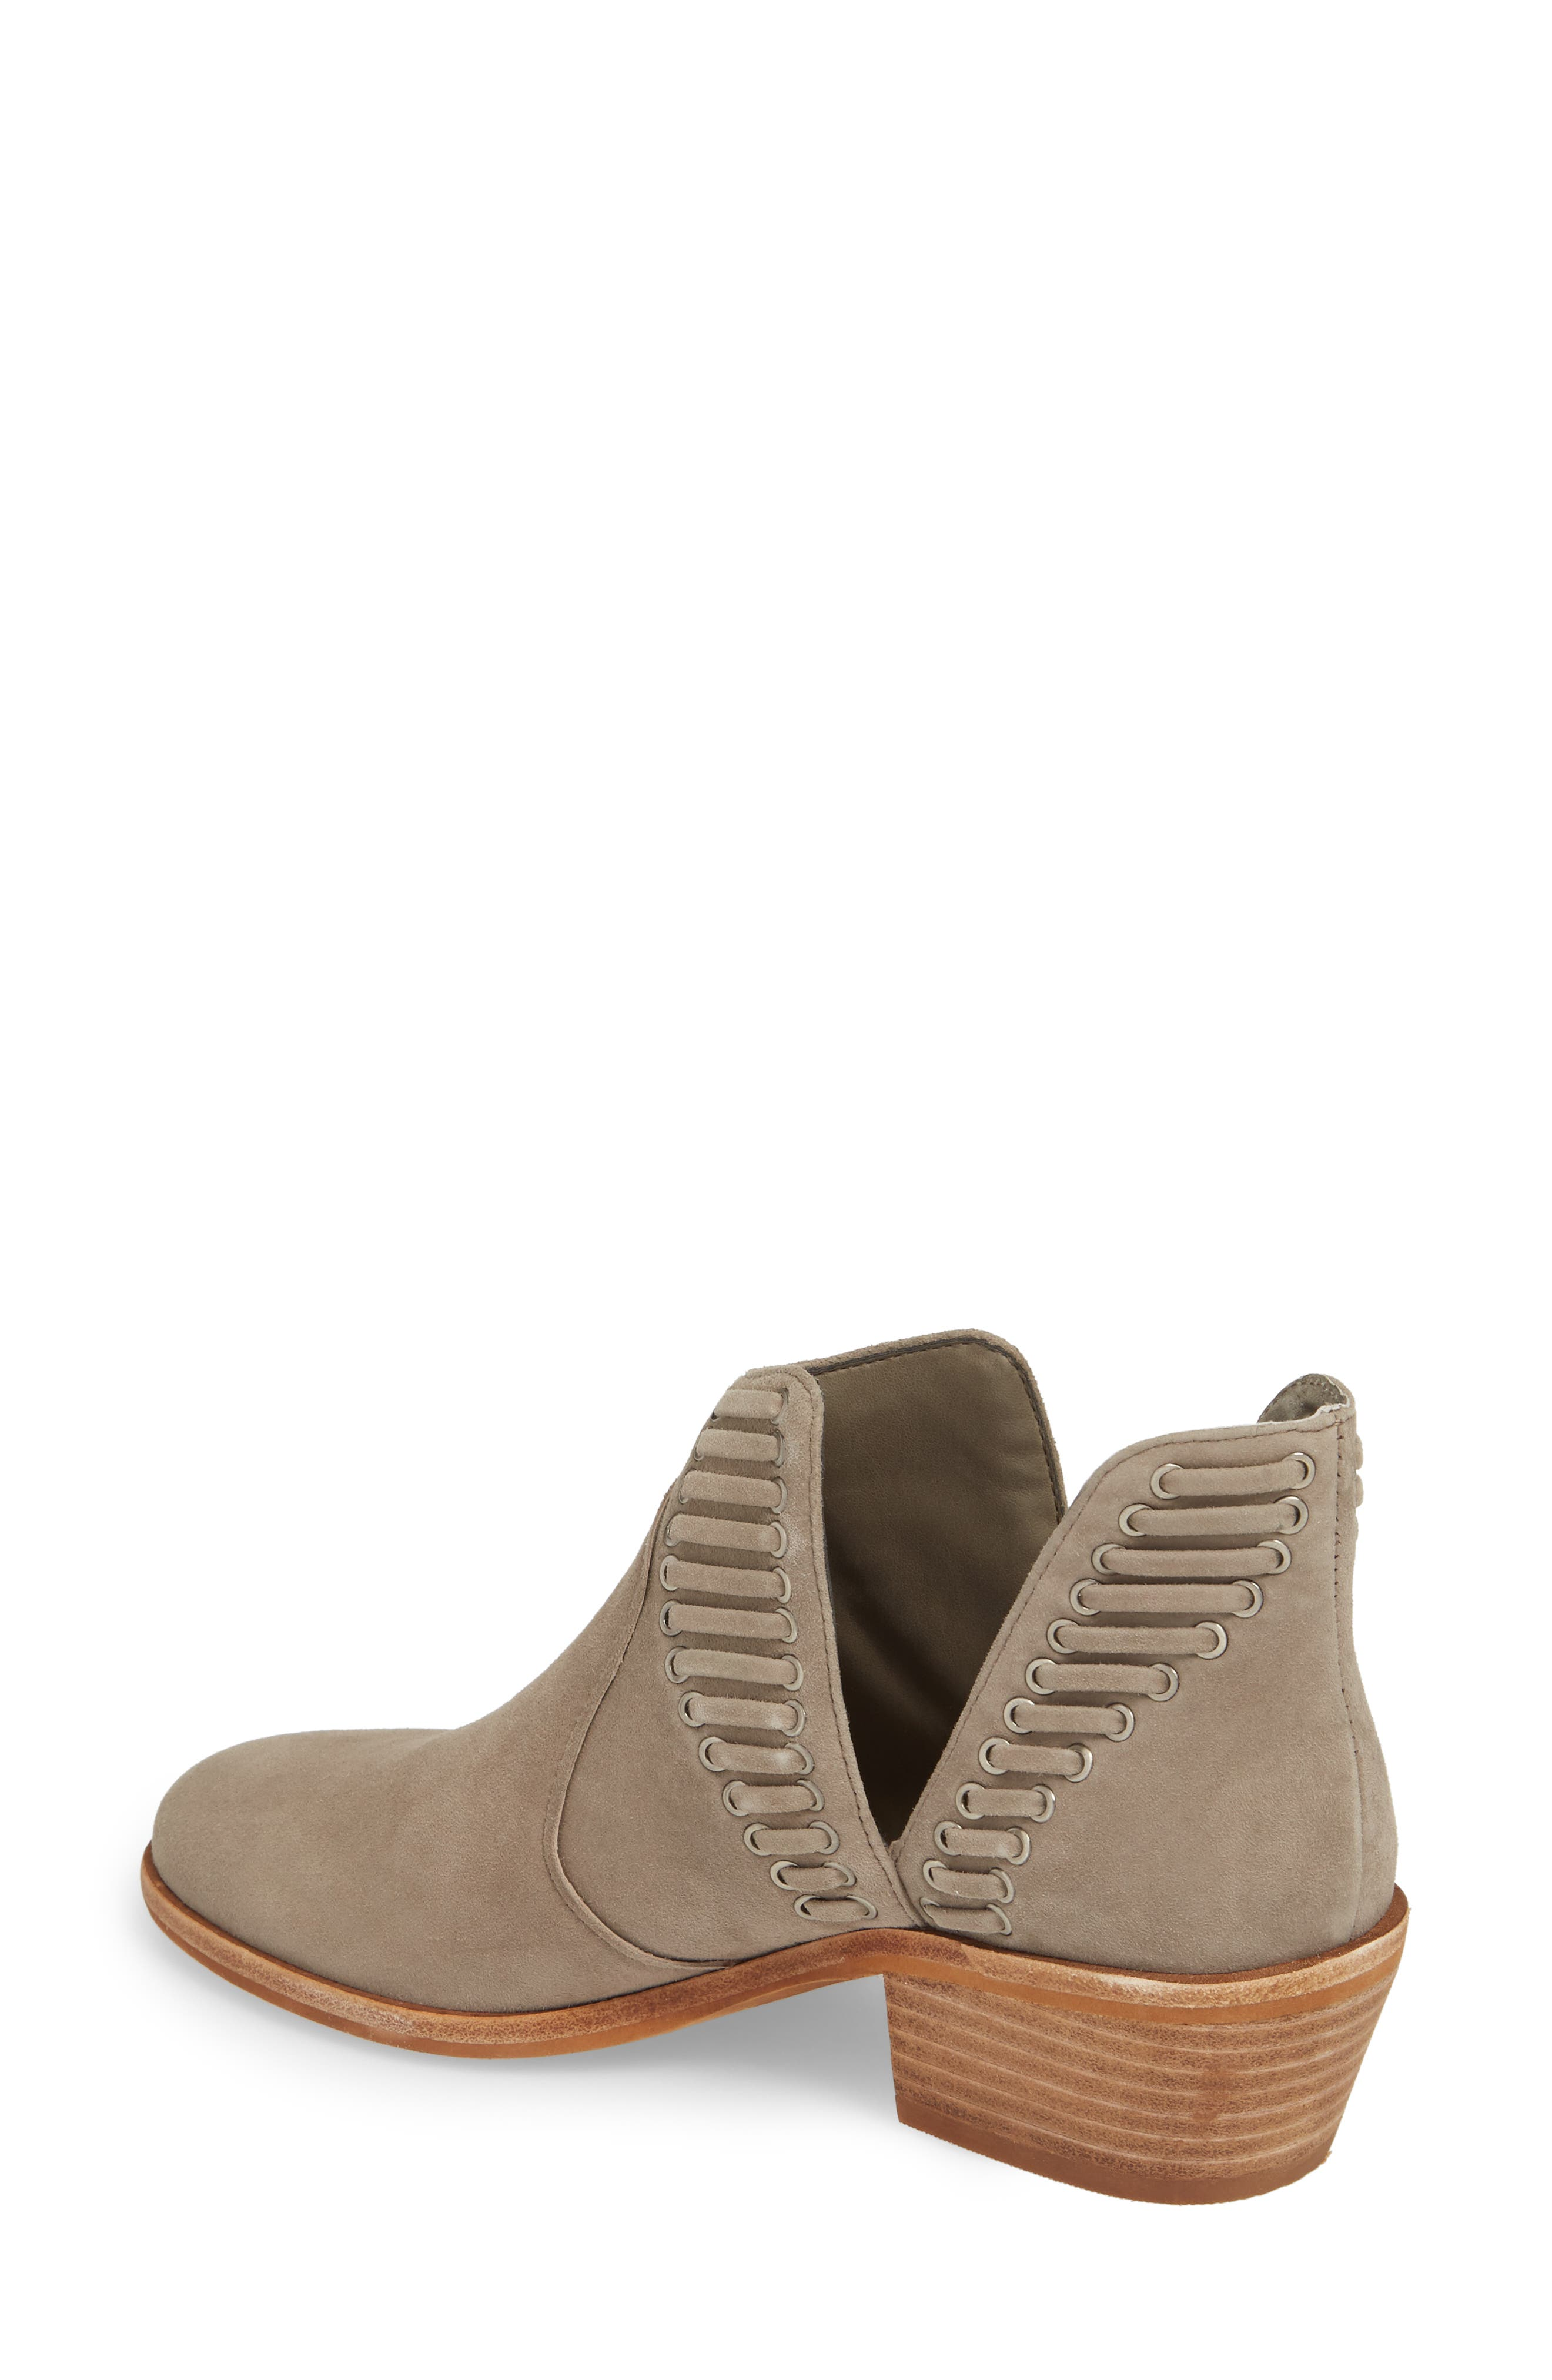 Pevista Bootie,                             Alternate thumbnail 2, color,                             FOXY SUEDE